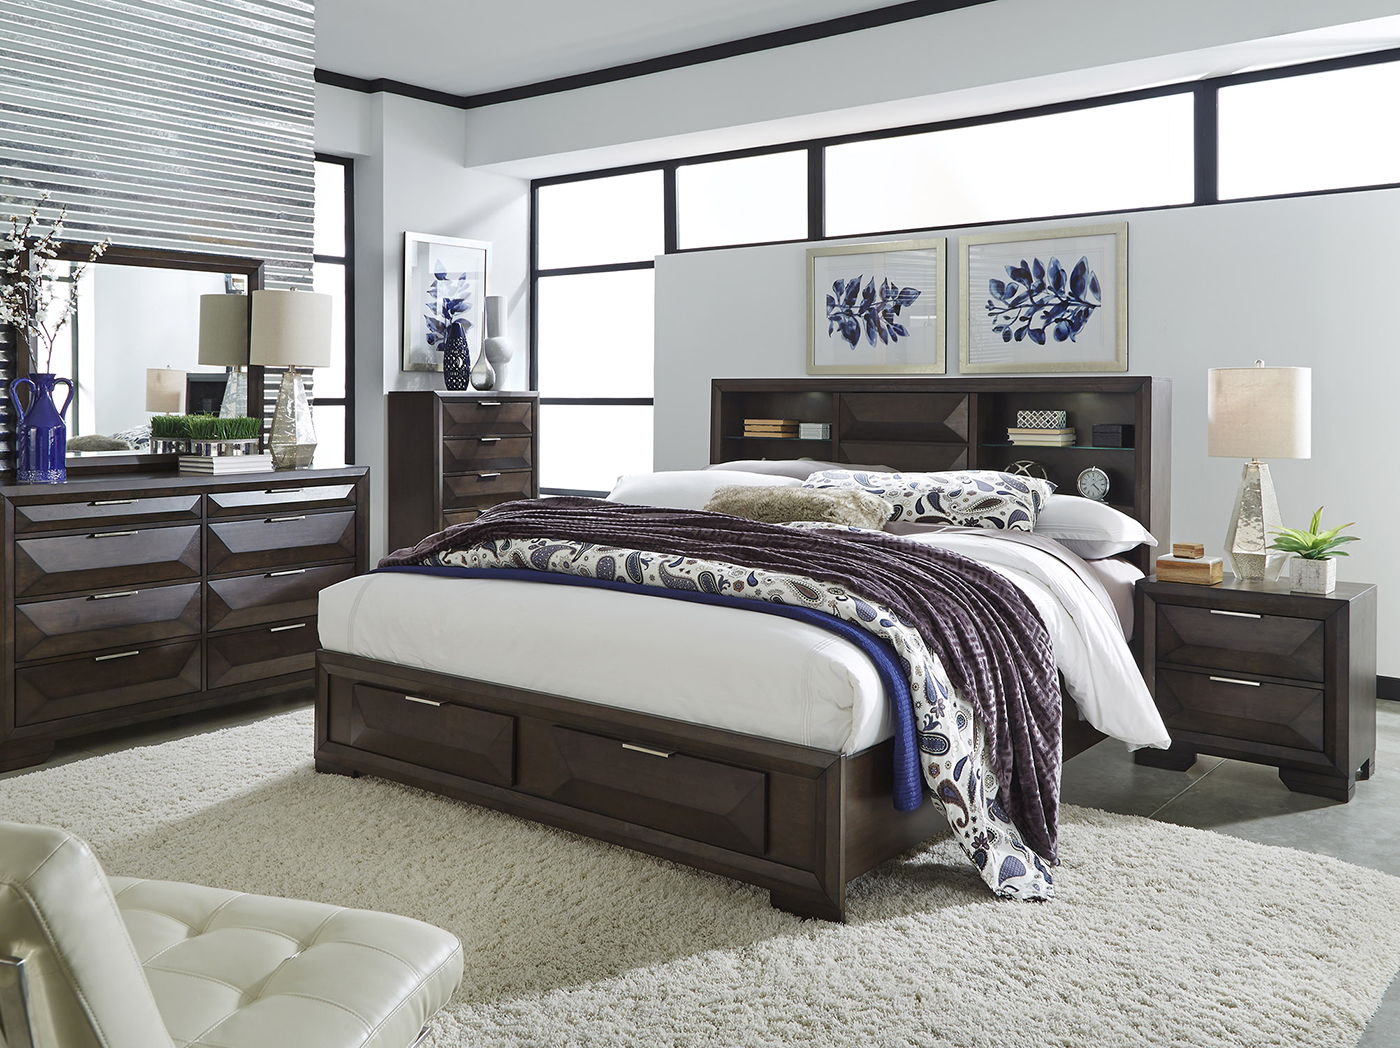 shore queen south the beds with drawers black headboards home storage p bed primo pure depot